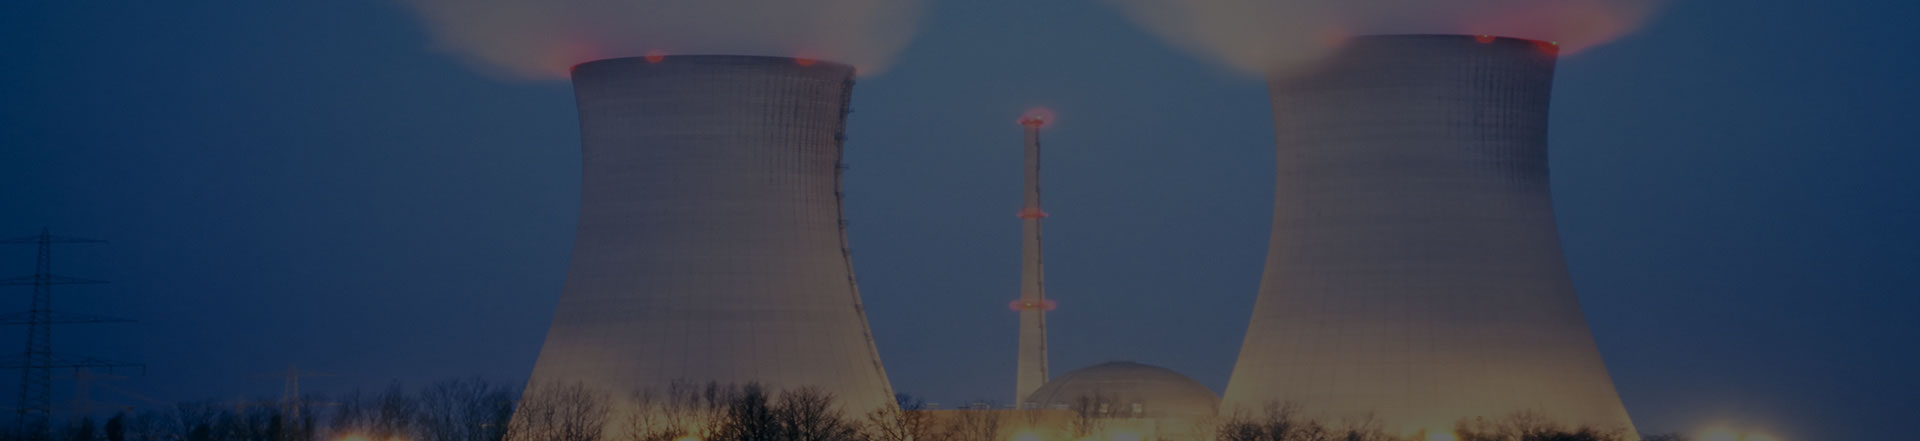 3_sectores_energia-f